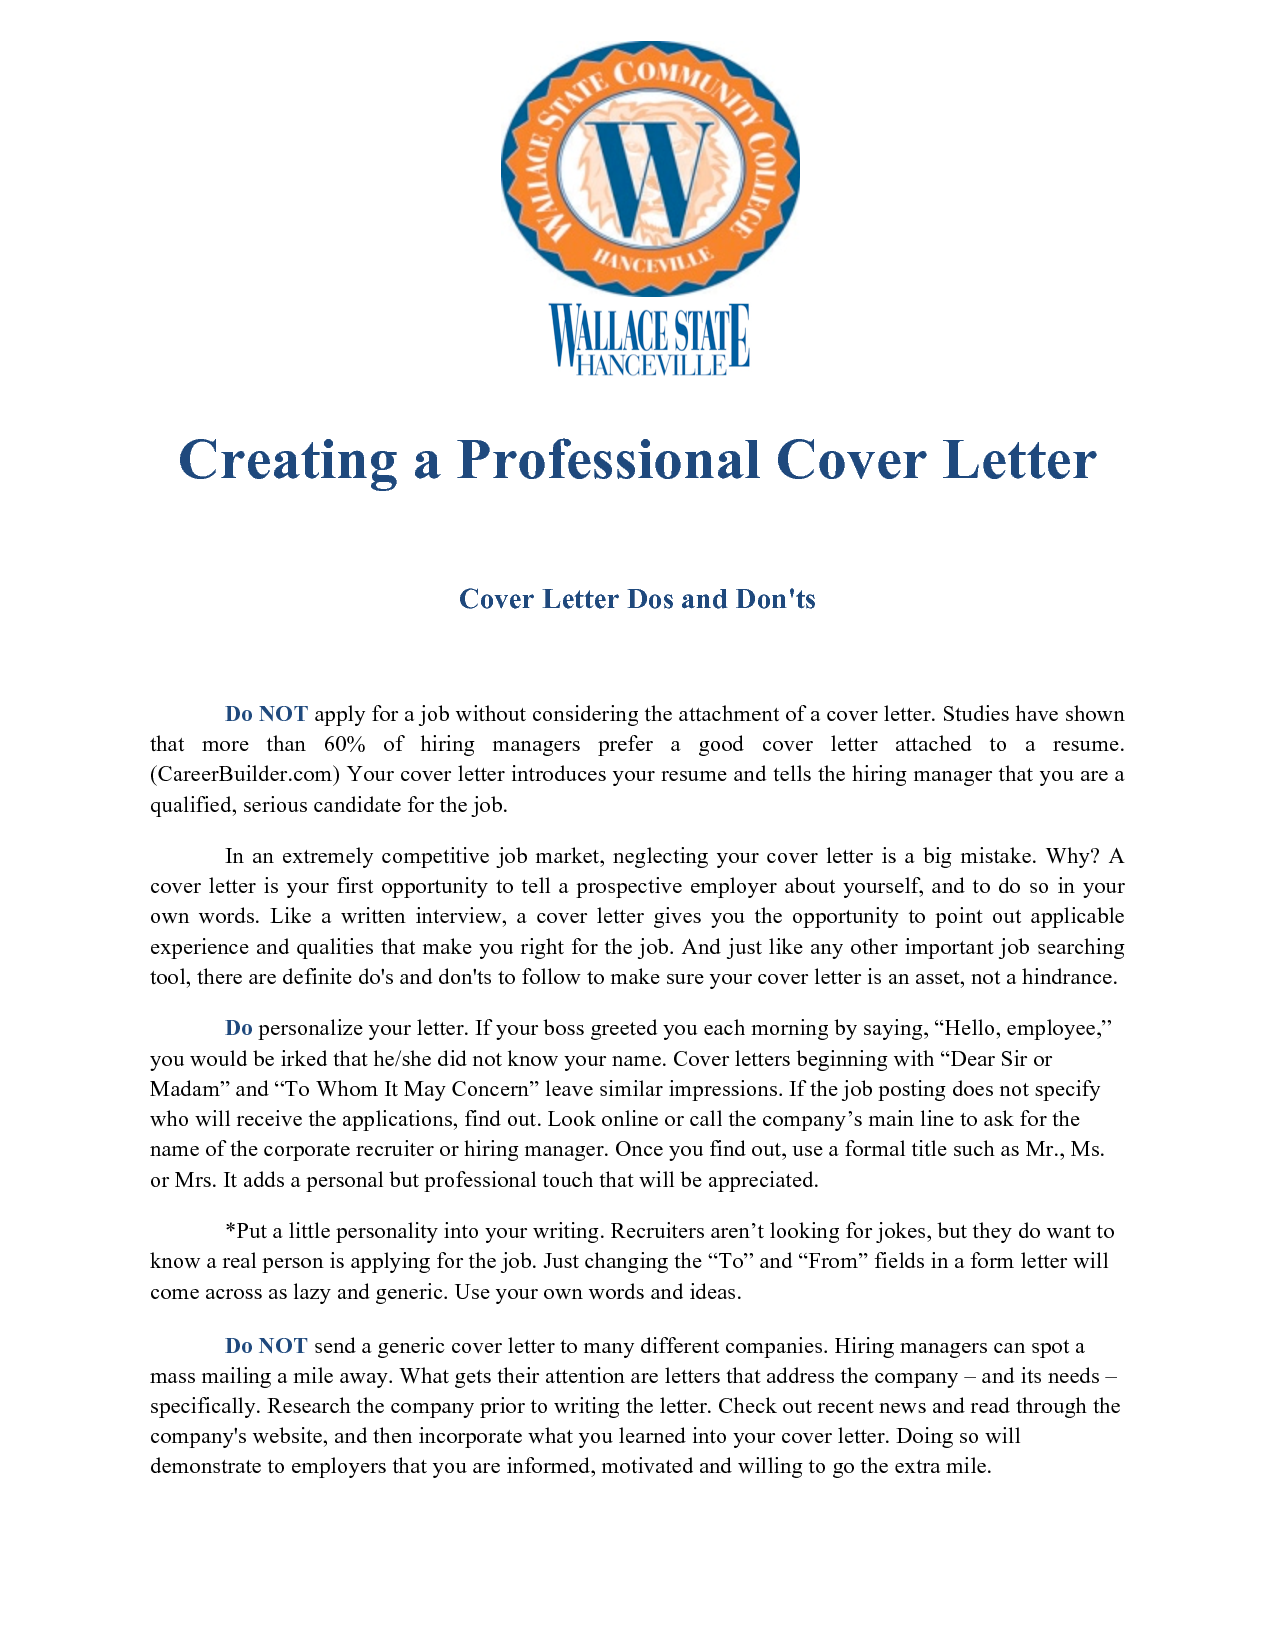 Lovely Career Builder Resume Templates Career Builder Resume Templates, Career  Builder Resume Search, Careerbuilder Free